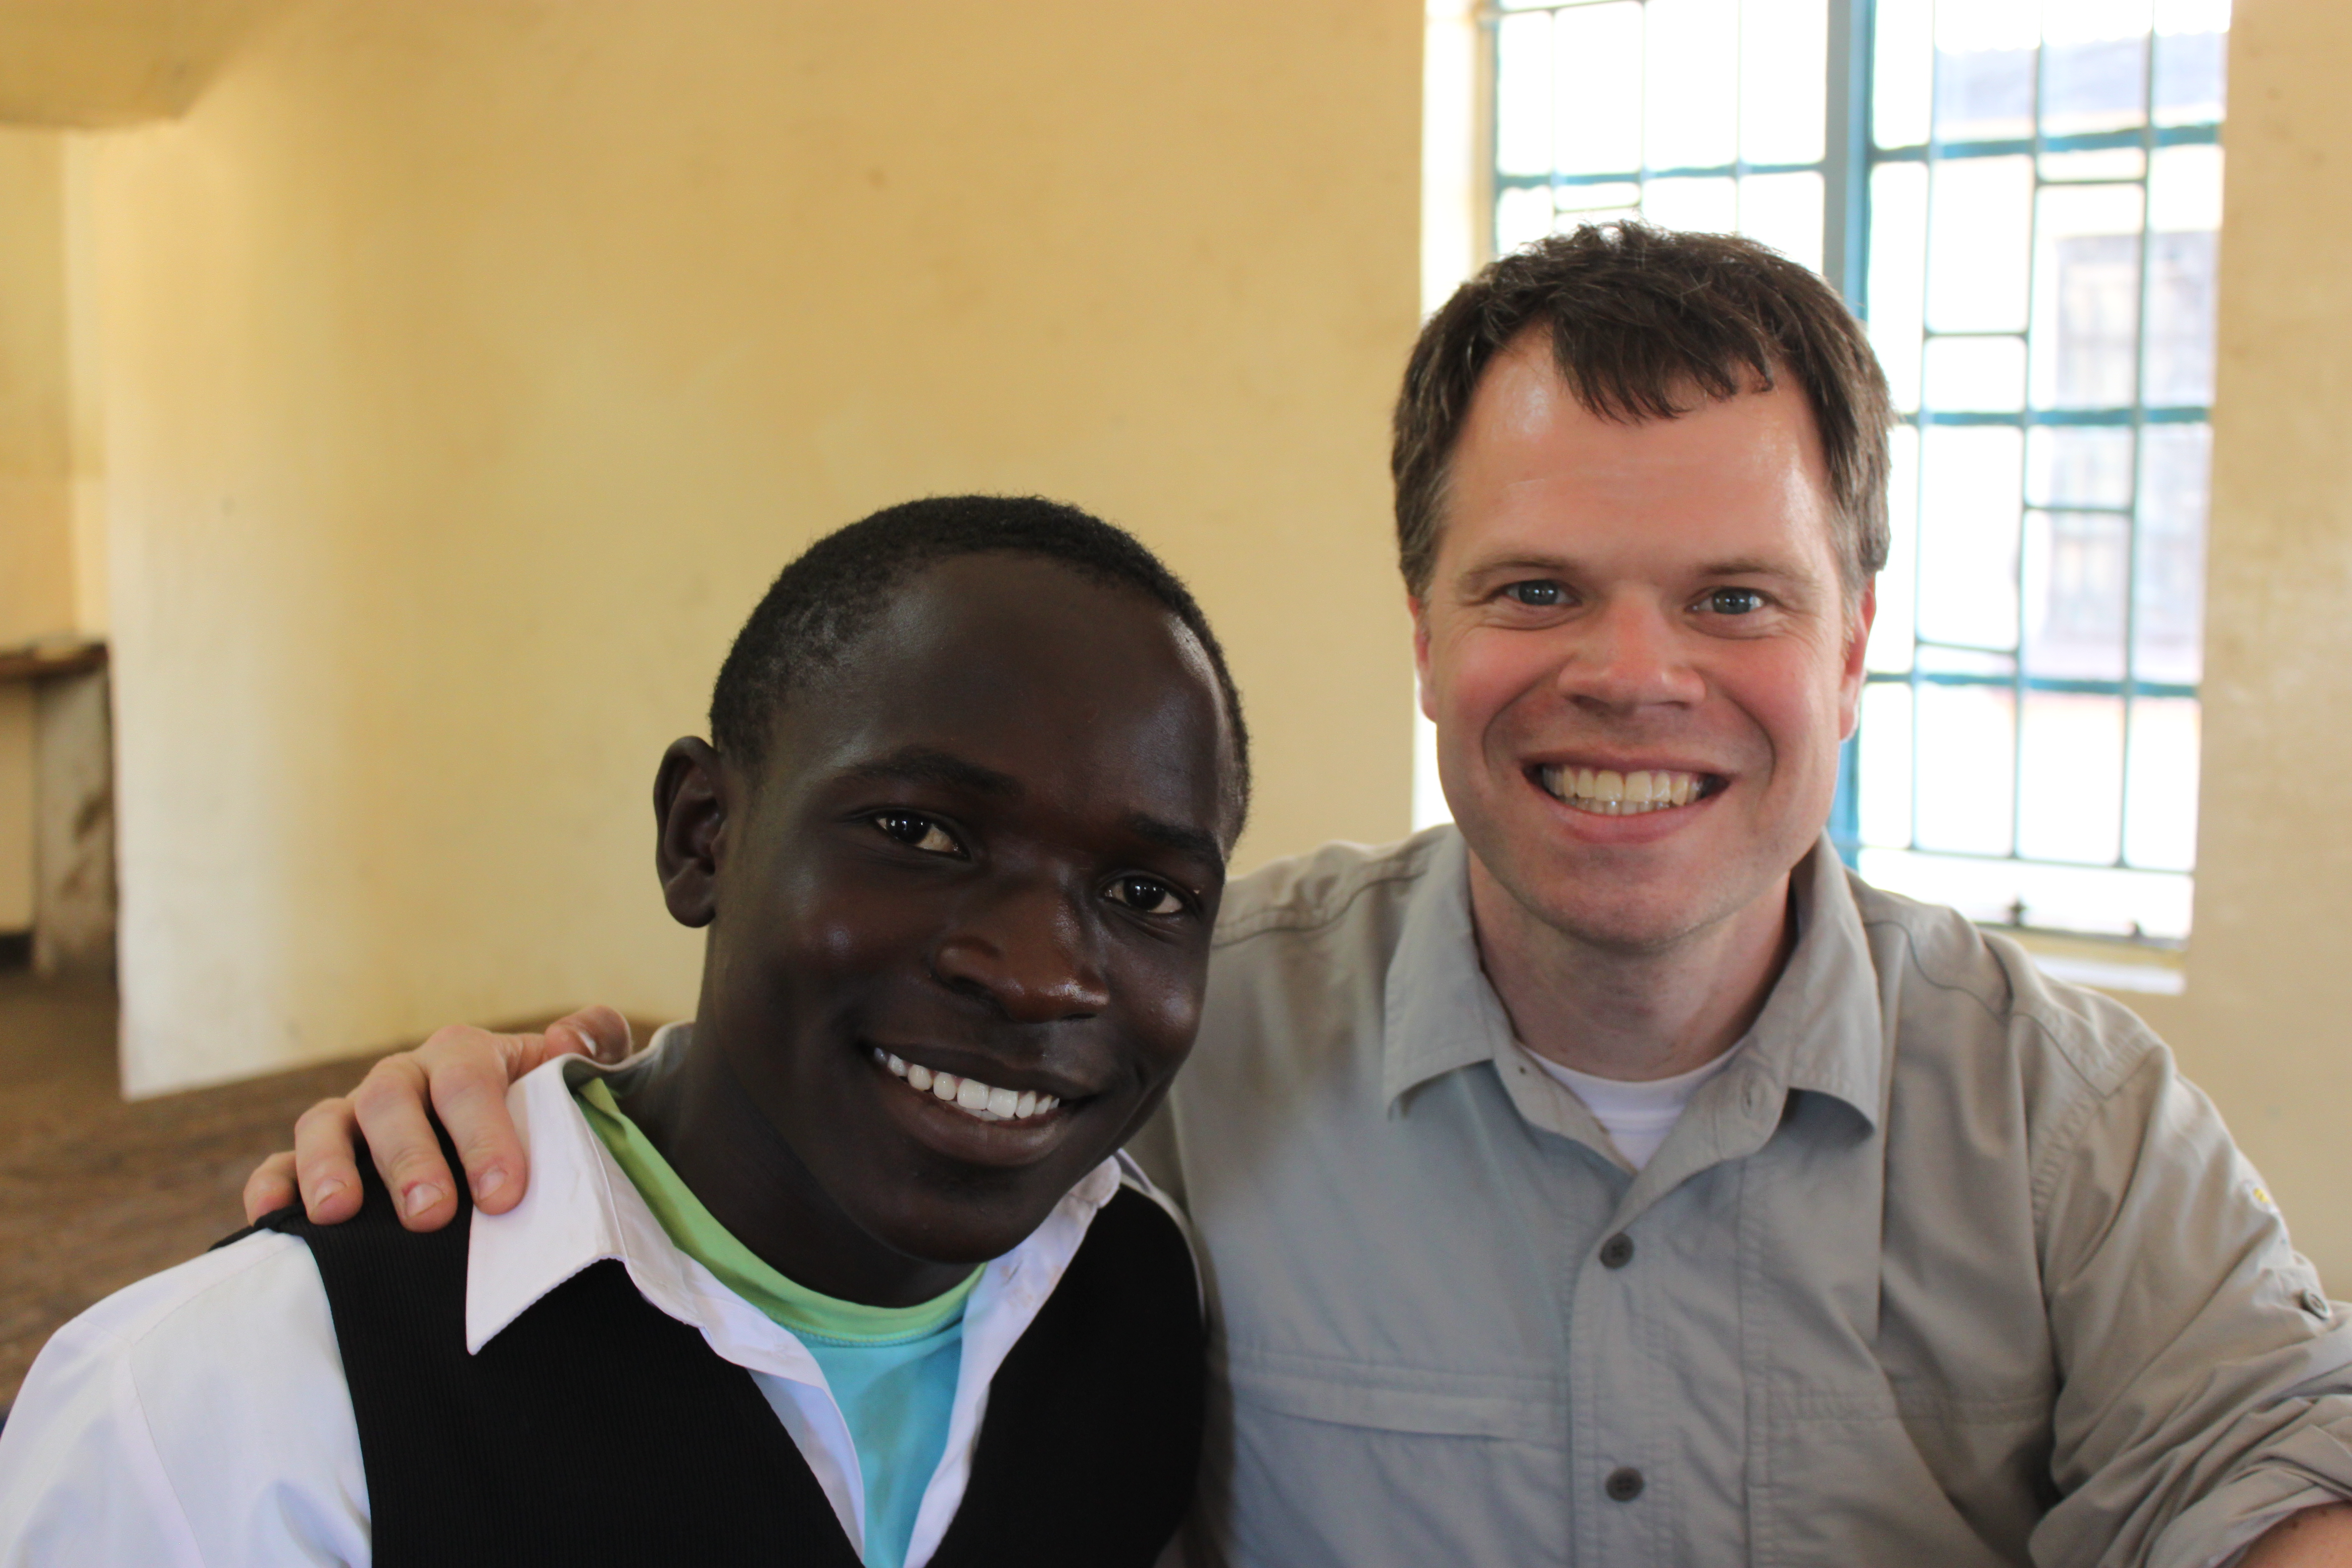 Gabe Cronin with Michael Samakayi at the Munali School for the Deaf and Blind. (Photo courtesty Sam Zieve and SAAS-ZC.)